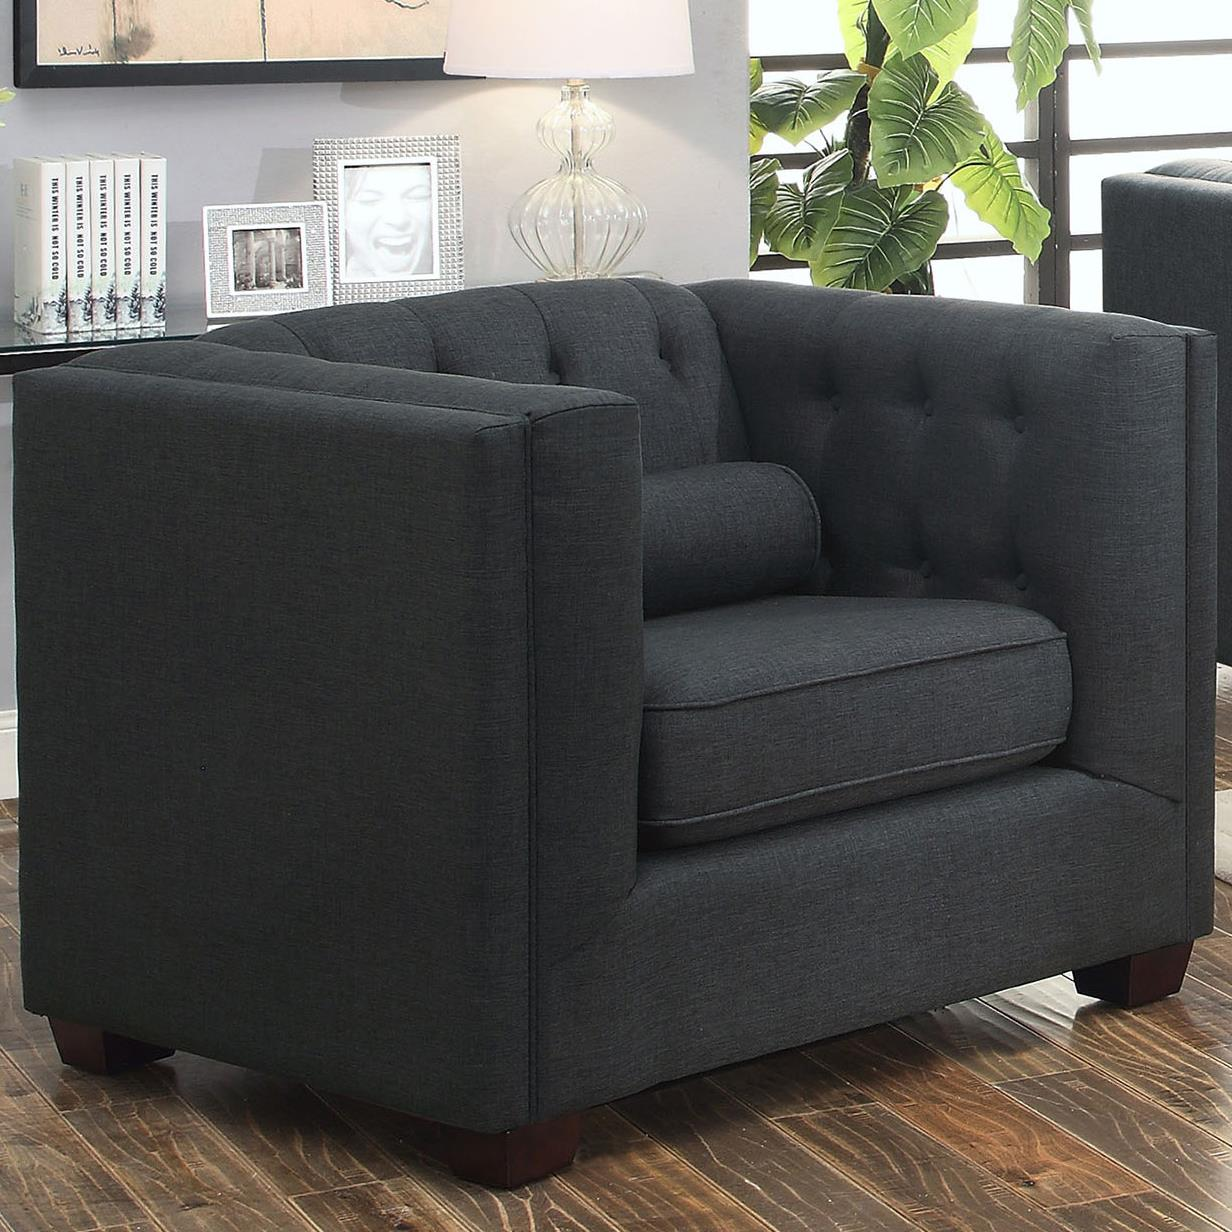 Coaster Cairns Upholstered Chair - Item Number: 504903-Charcoal